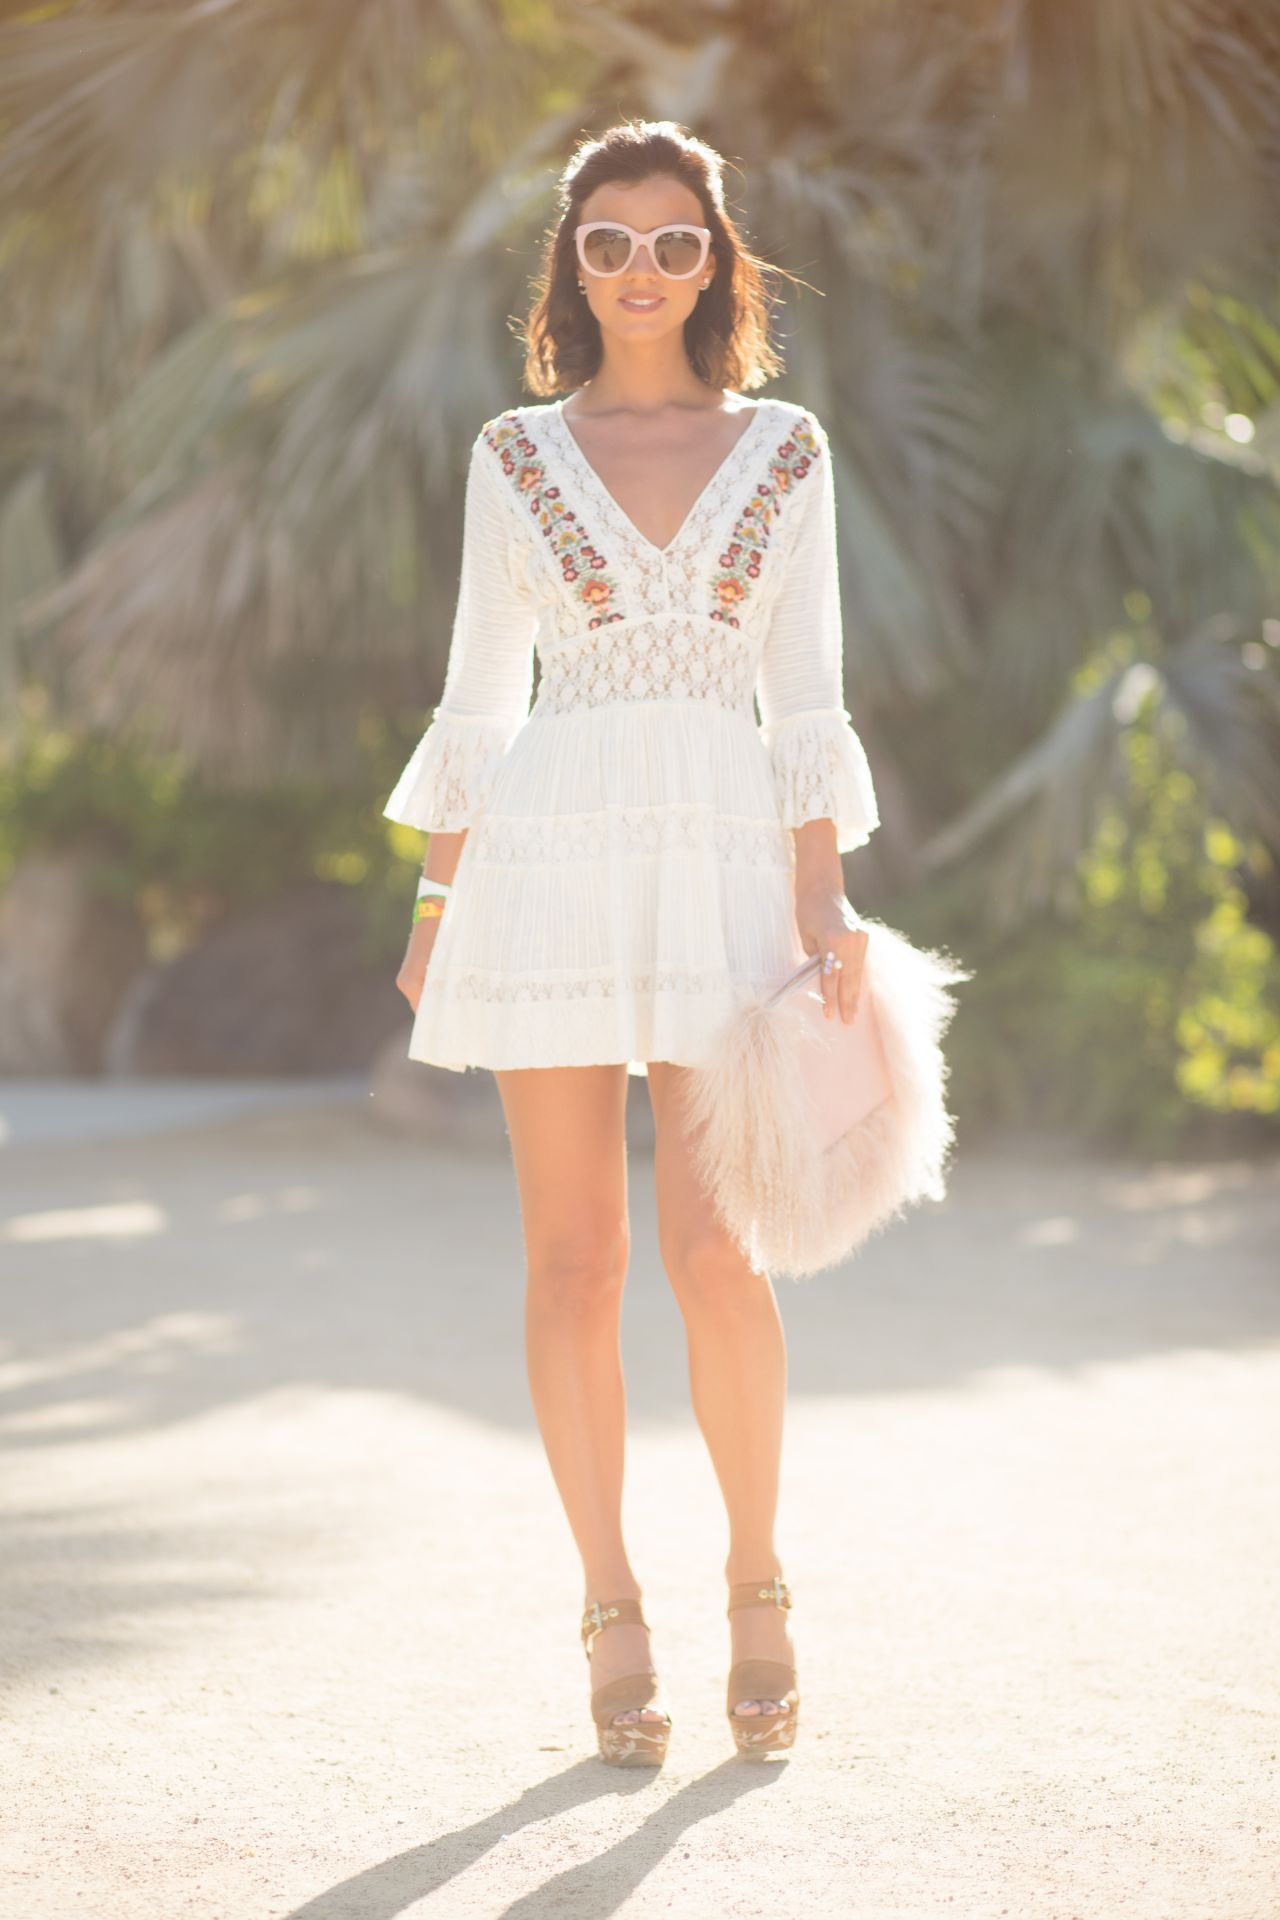 Lucy Mecklenburgh – Rachel ZOEasis at Coachella in Palm Springs, April 2017